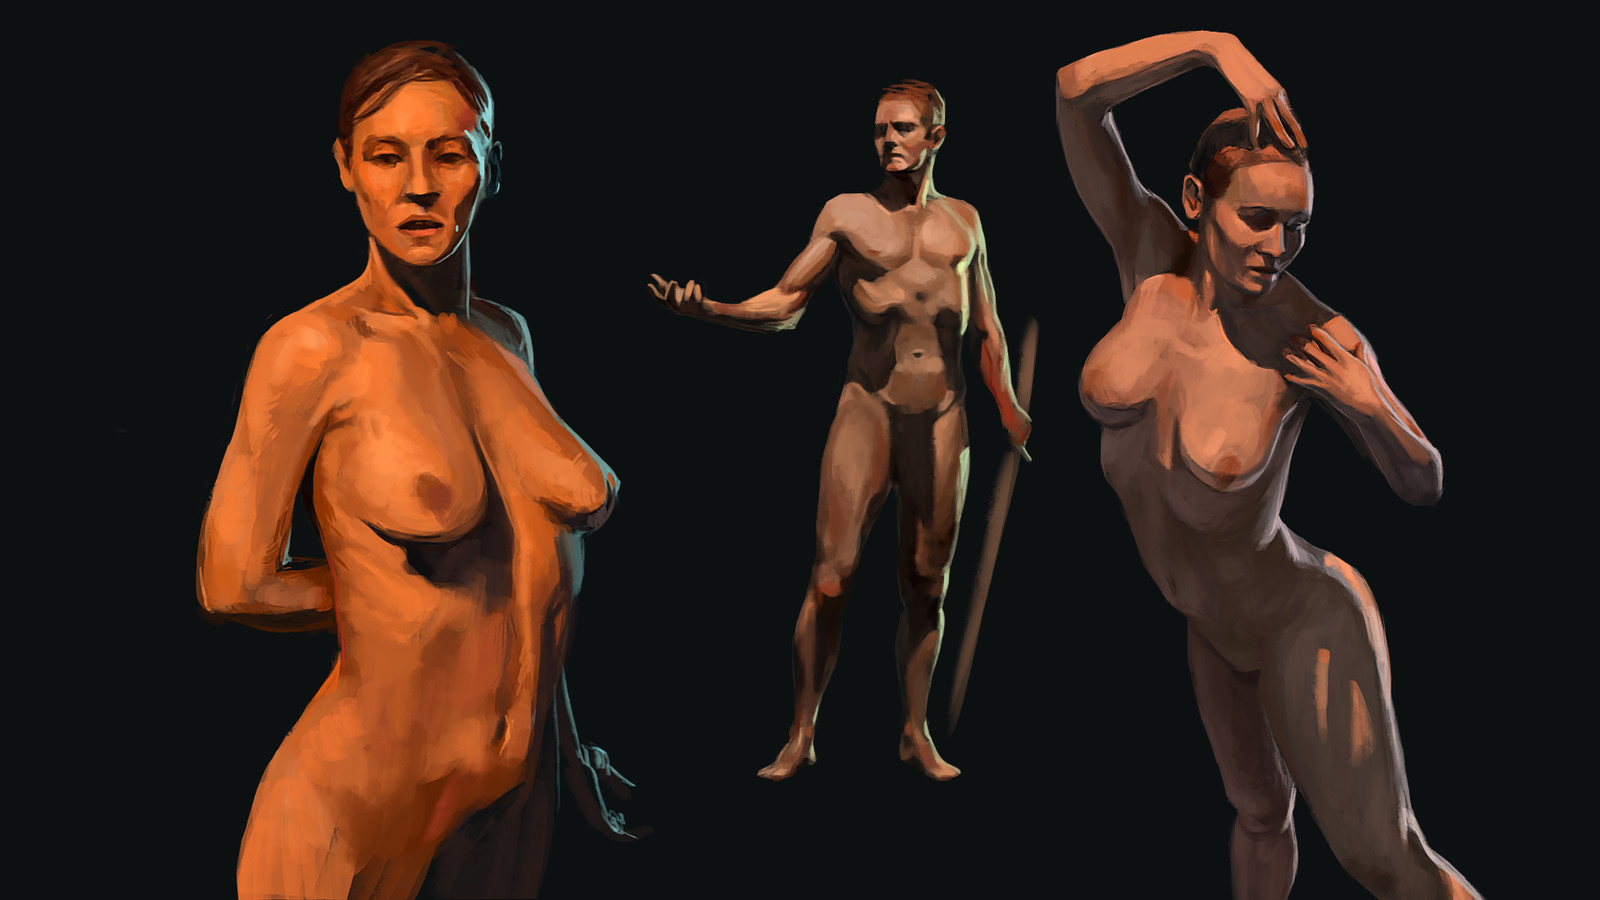 Experimenting with lights and different poses using the models from Anatomy 360 as reference